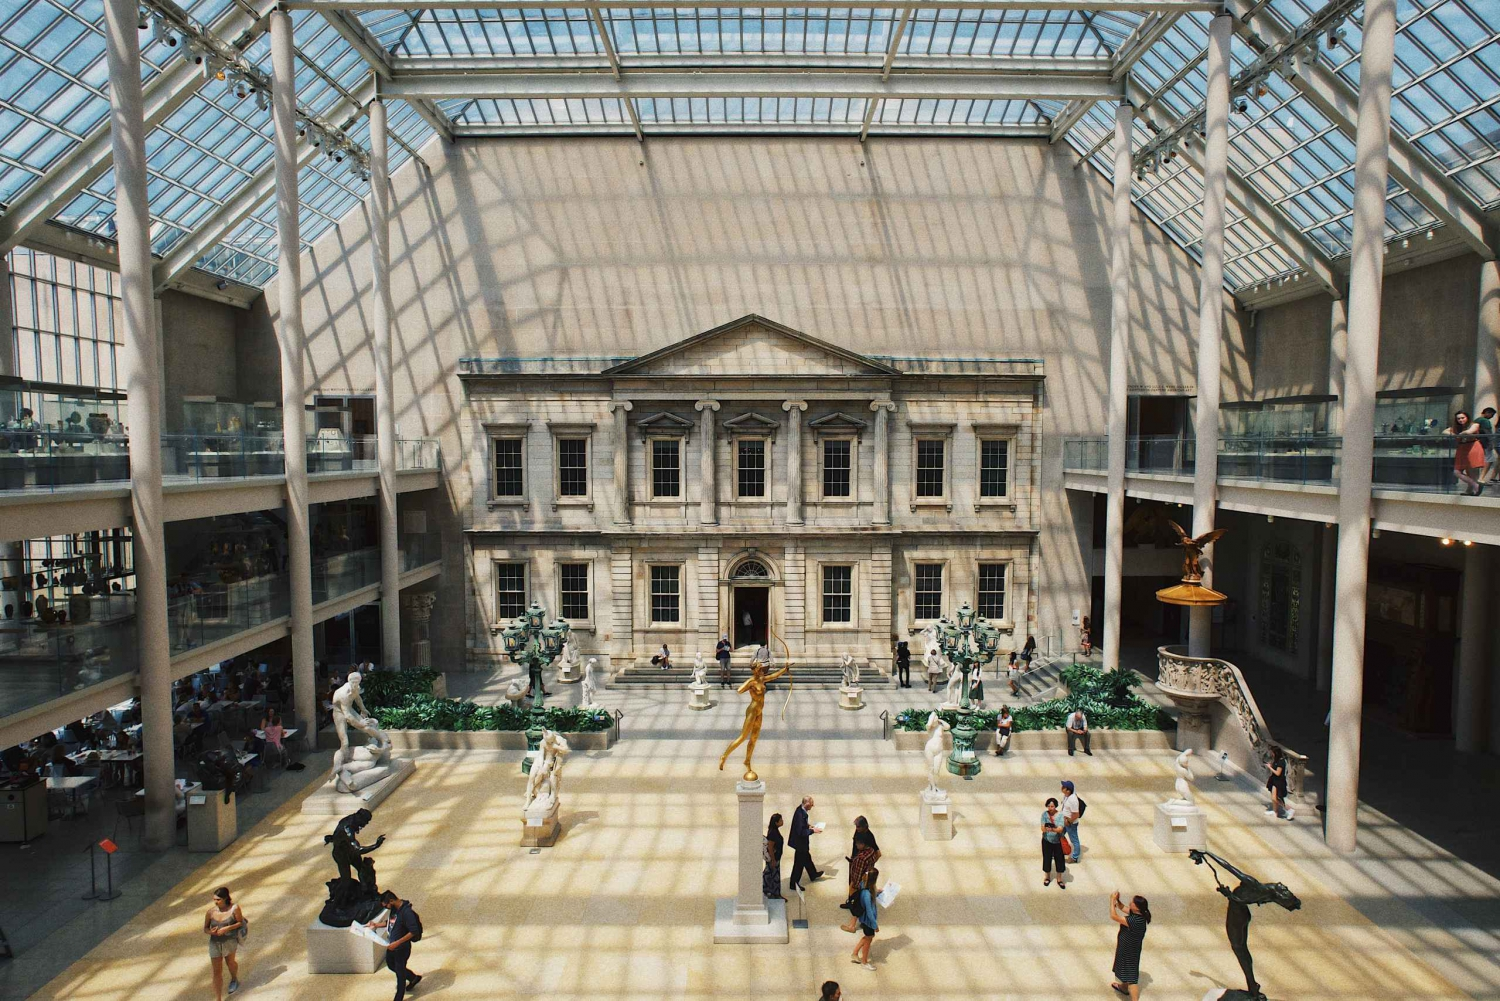 NYC: Metropolitan Museum of Art (MET) - Guided Museum Tour